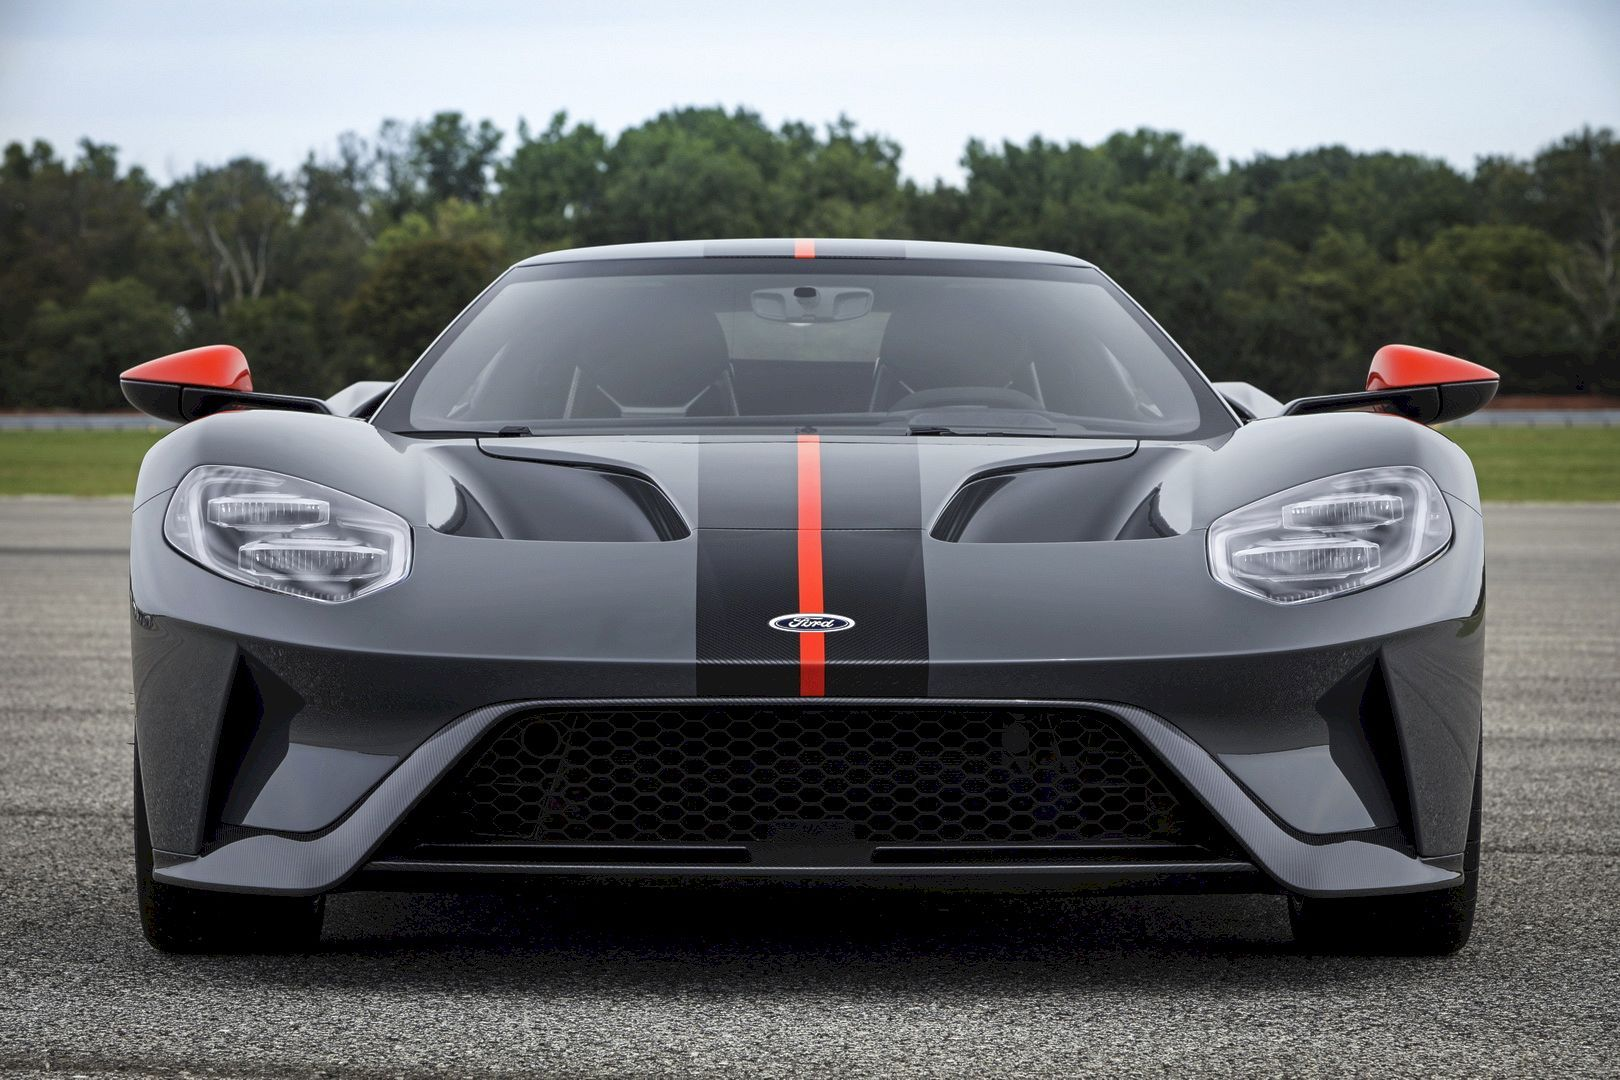 2019 Ford Gt Carbon Series Attacks Track And Drive Home Ford Gt 2019 Ford Car Ford